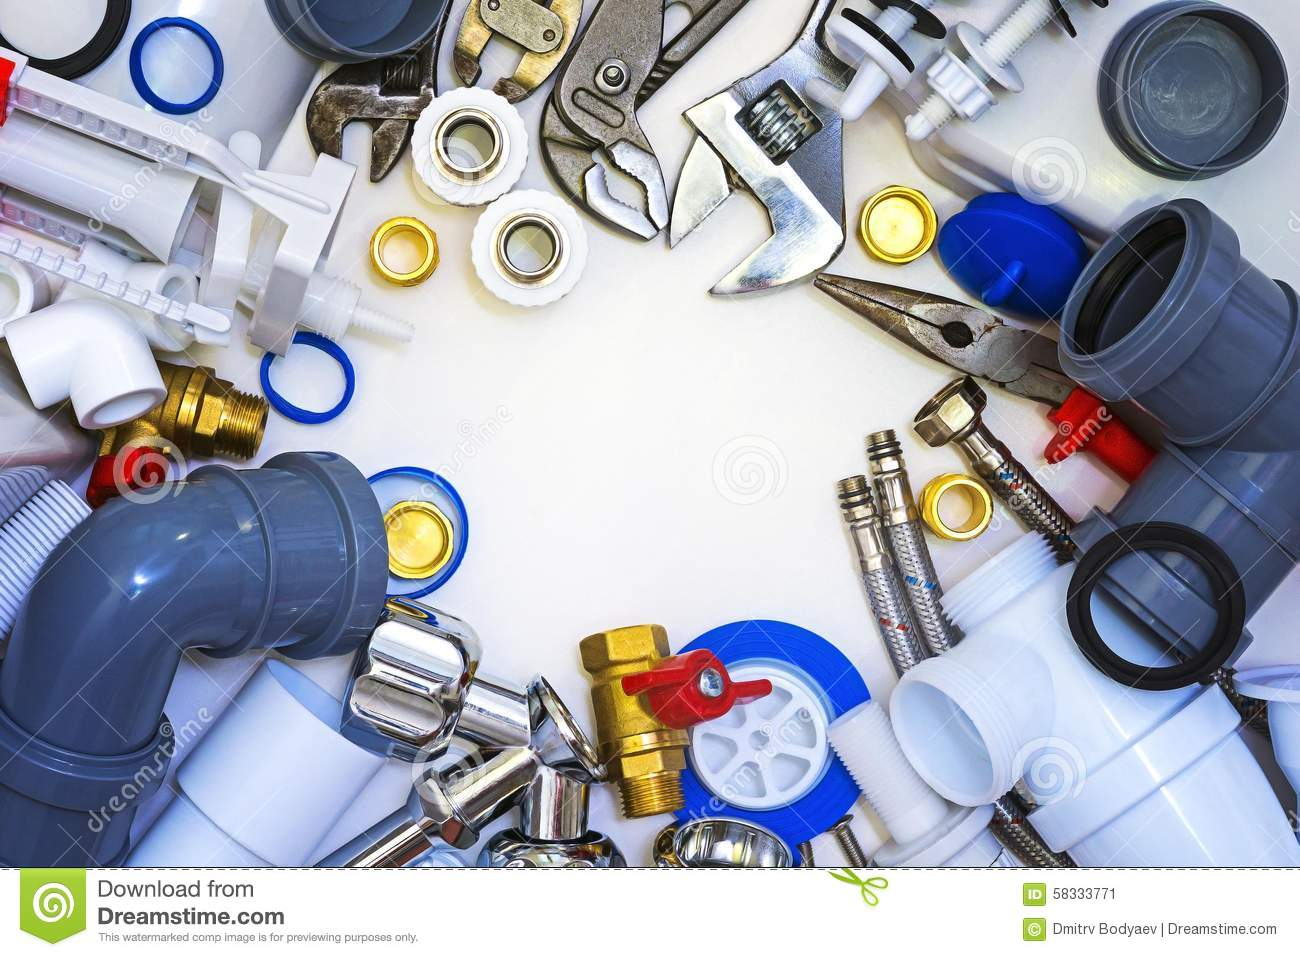 Plumbing Tools And Materials Stock Photo Image 58333771